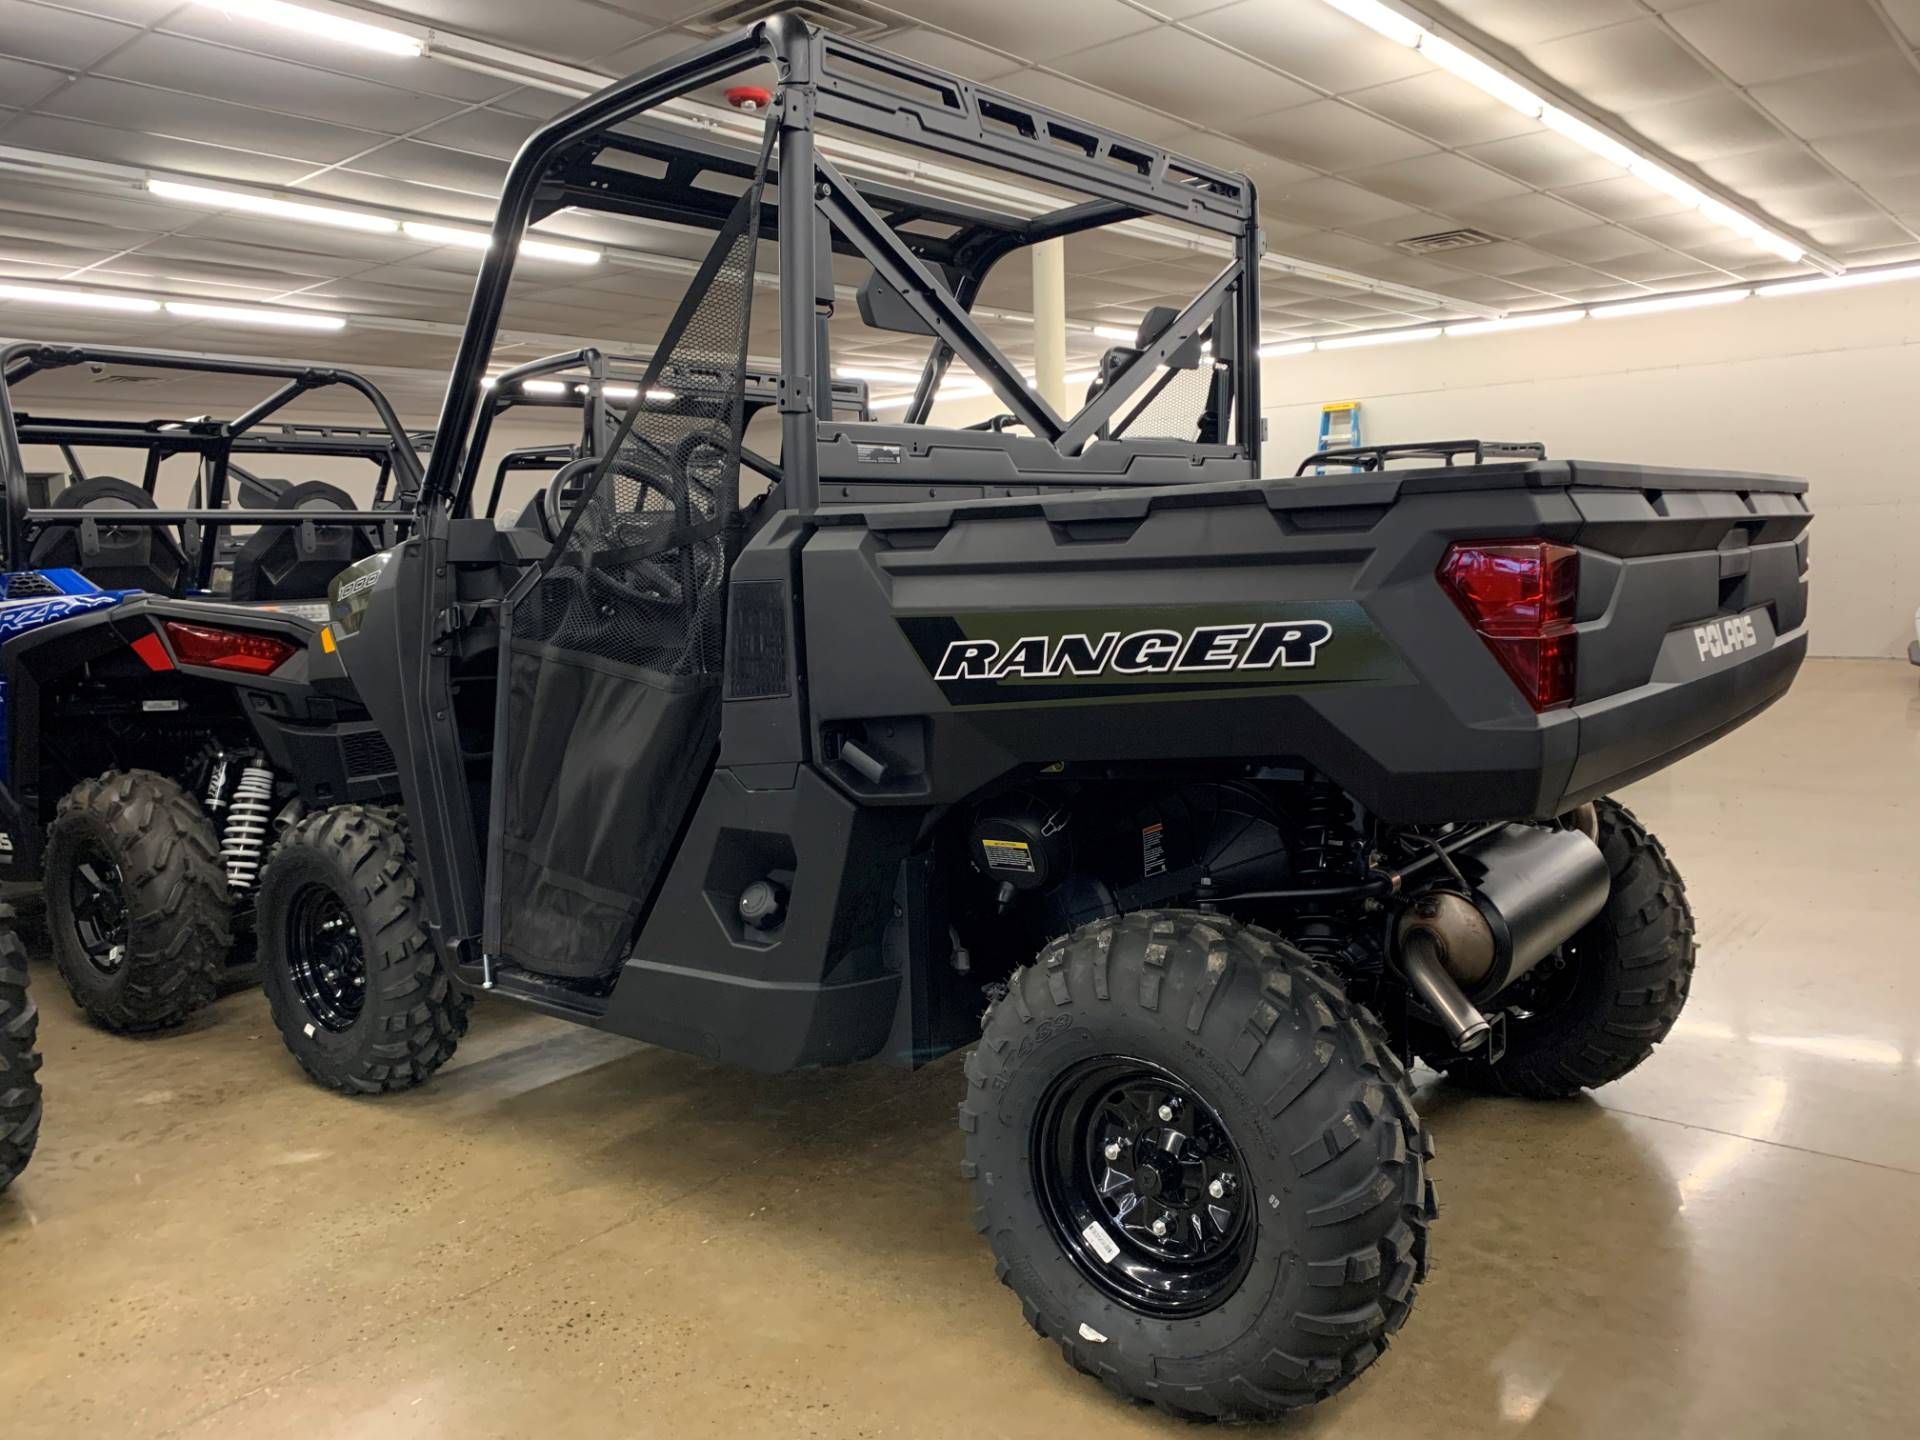 2020 Polaris Ranger 1000 in Chicora, Pennsylvania - Photo 6